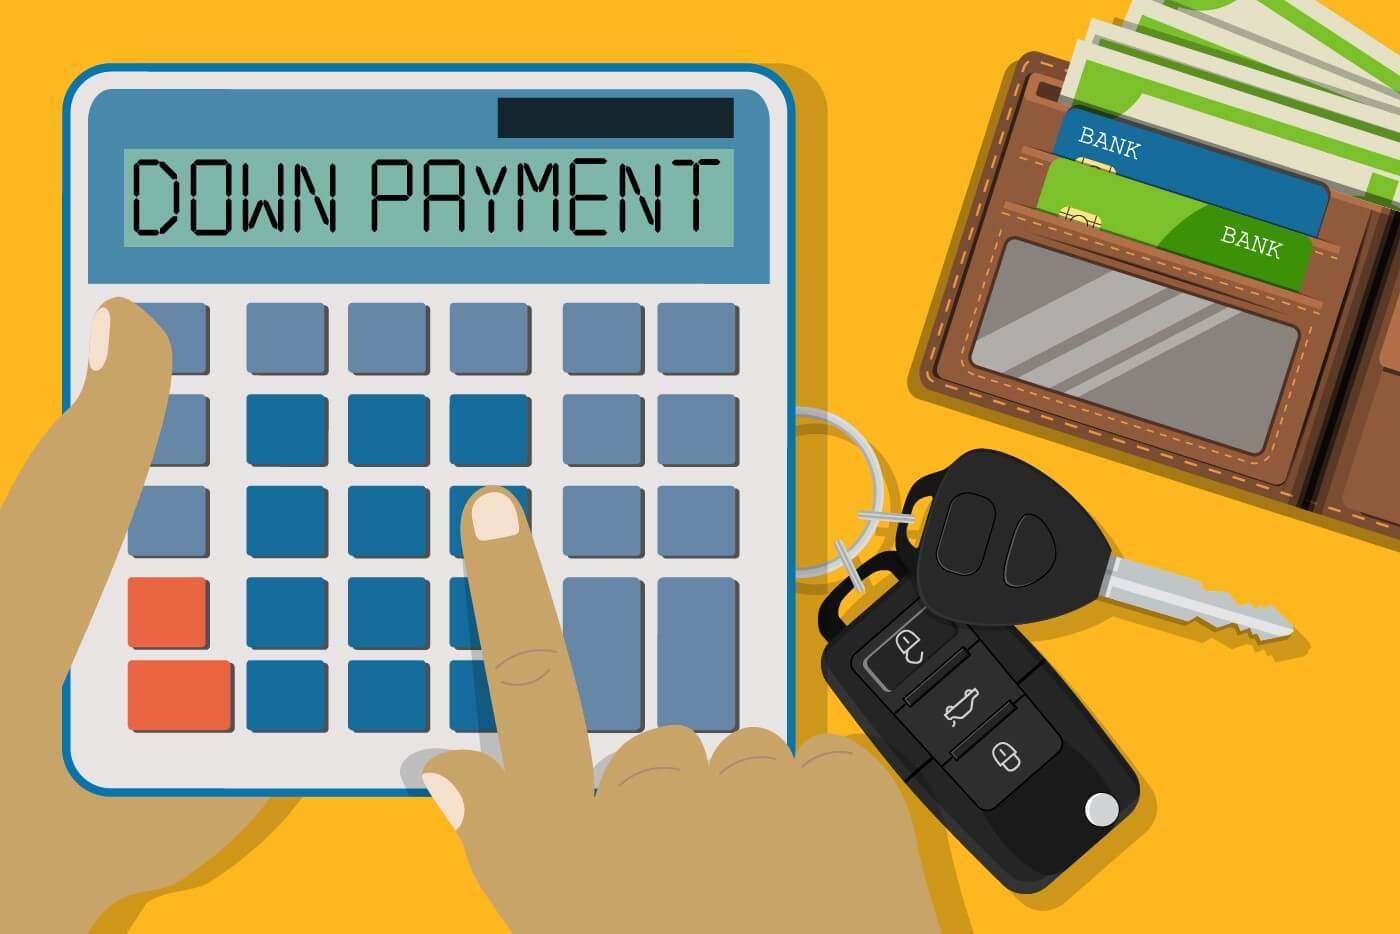 Down Payment Calculator - Calculatorall.com